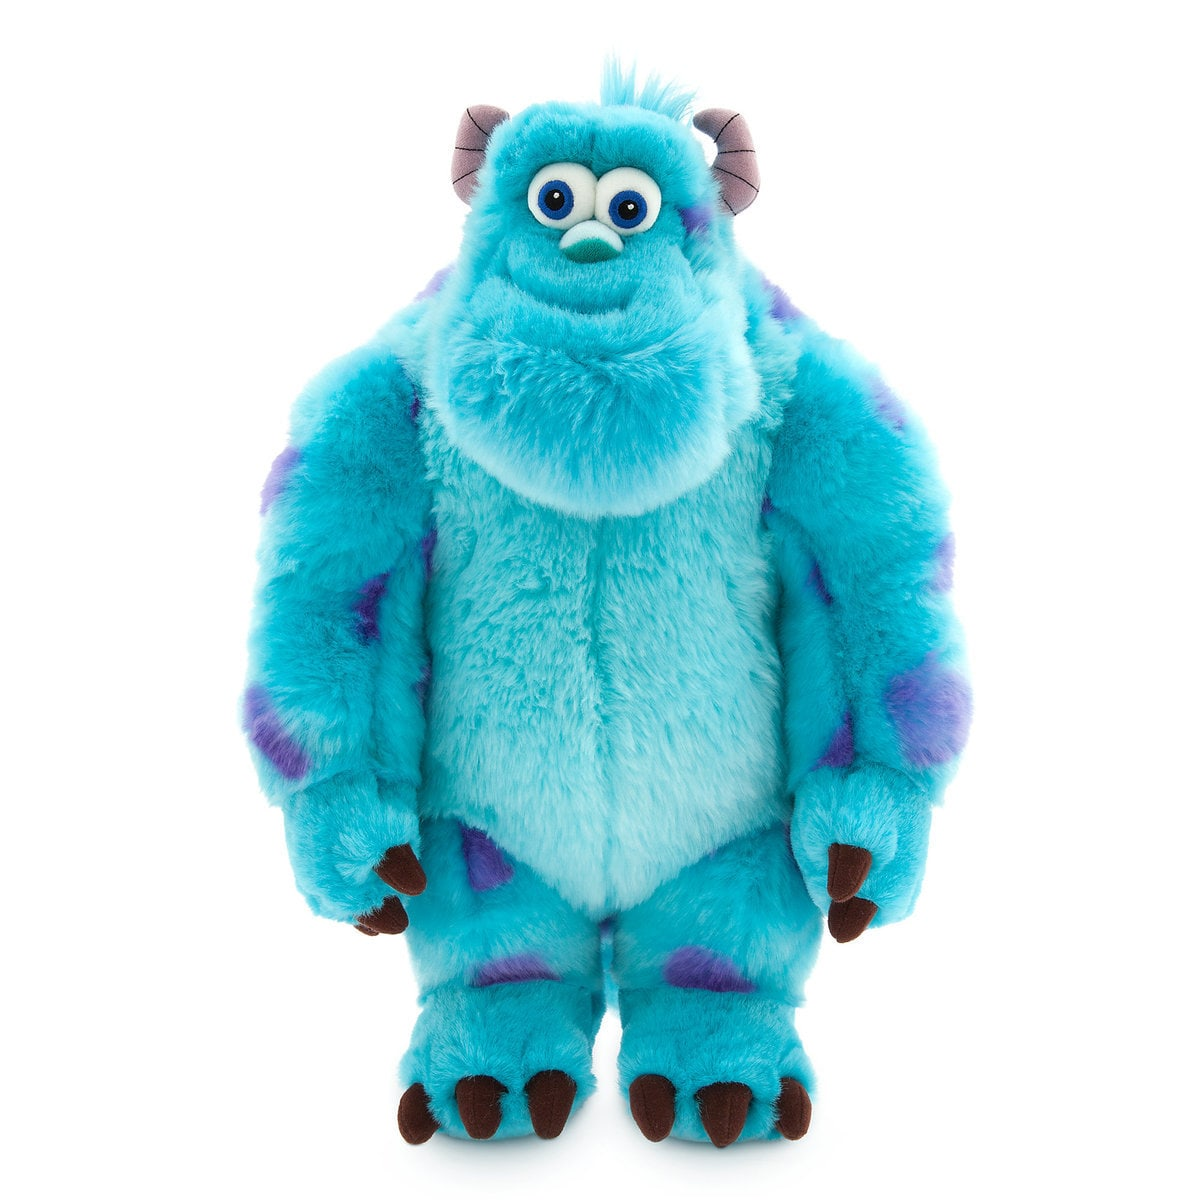 Sulley Plush - Monsters, Inc. - Medium - 15''